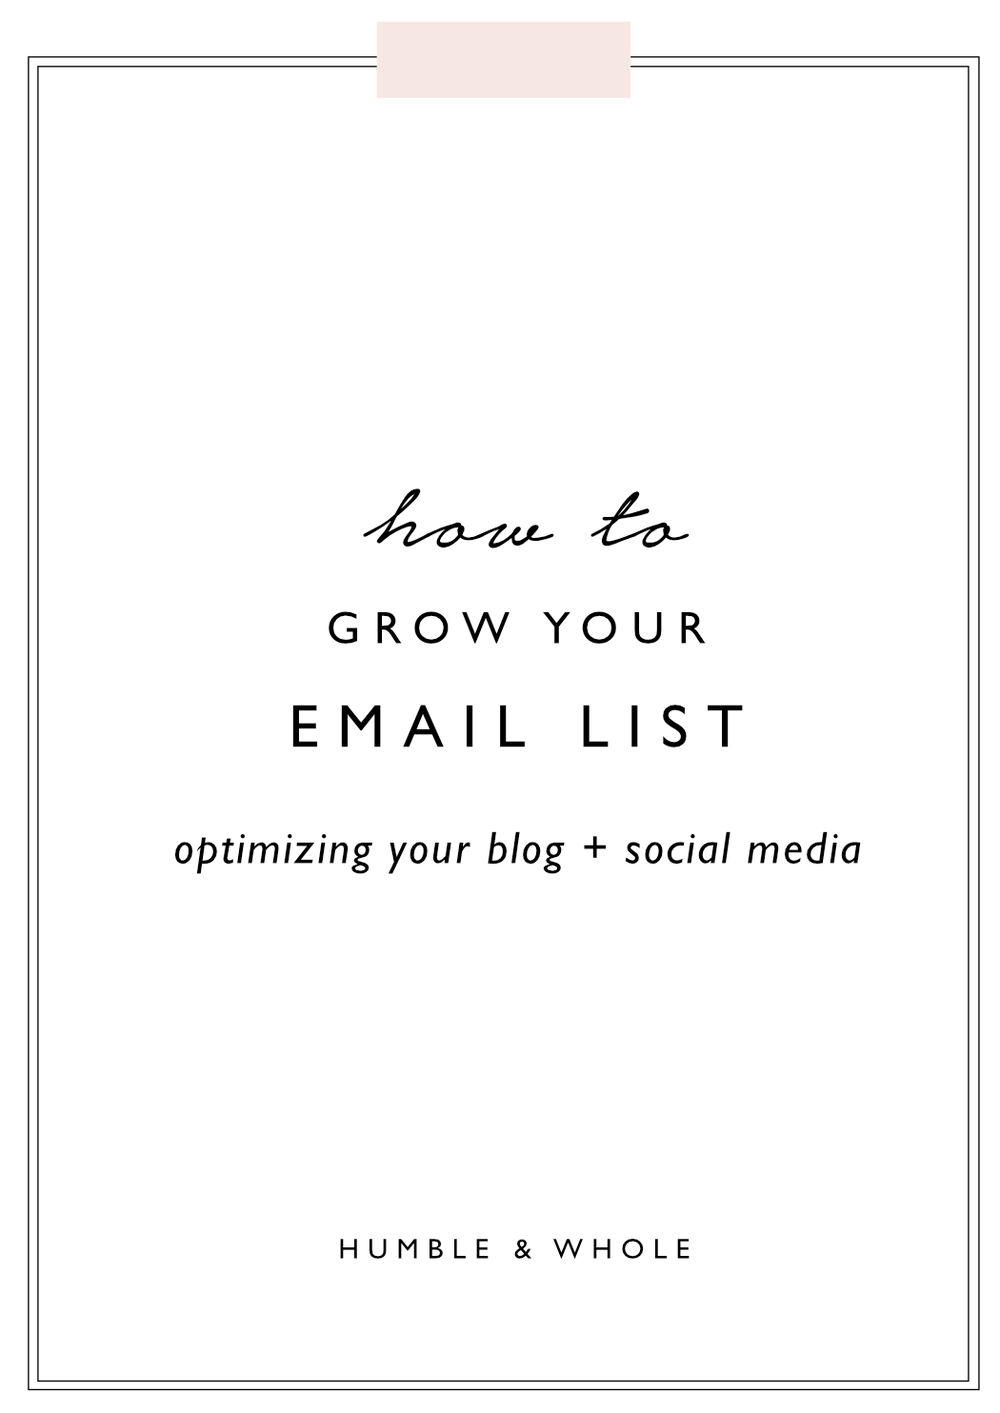 Many entrepreneurs focus on building a blog or social media presence before building a mailing list. Even though a mailing list has the potential to be far more profitable than social media, email marketing tends to be pushed to the back burner or ignored. In this post, we're revealing our favorite tried and true list building methods that are based on optimizing your blog and social media profiles.